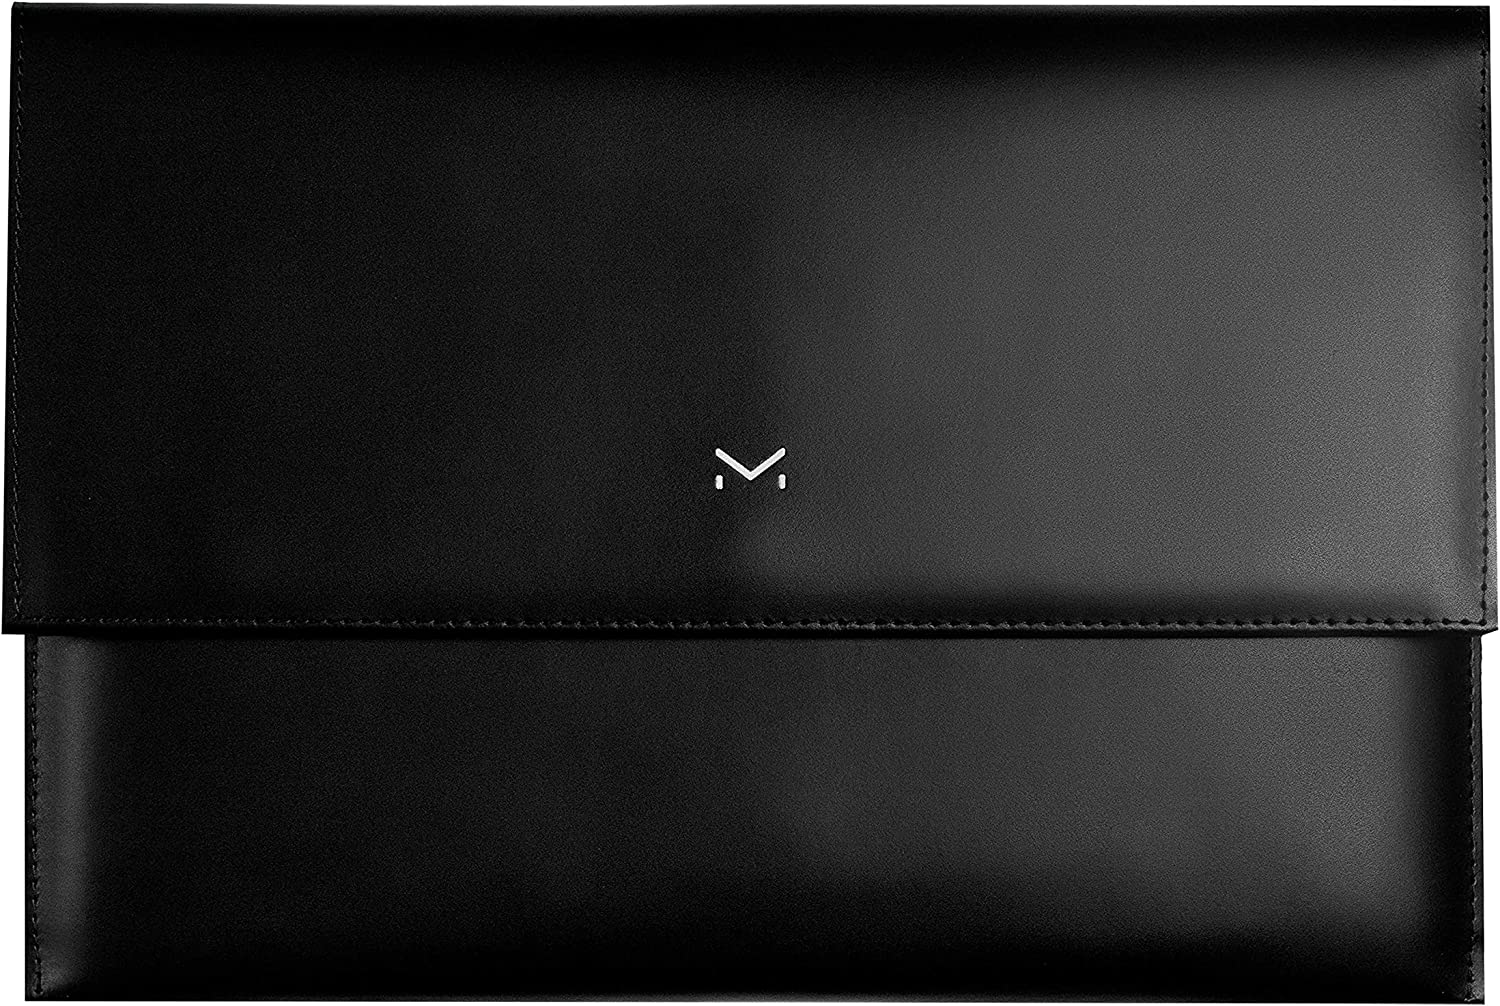 Monocaso Case Cover Sleeve Made from Premium Leather Fits Perfectly with iPad MacBook (MacBook Pro 13 / Air (New Model))